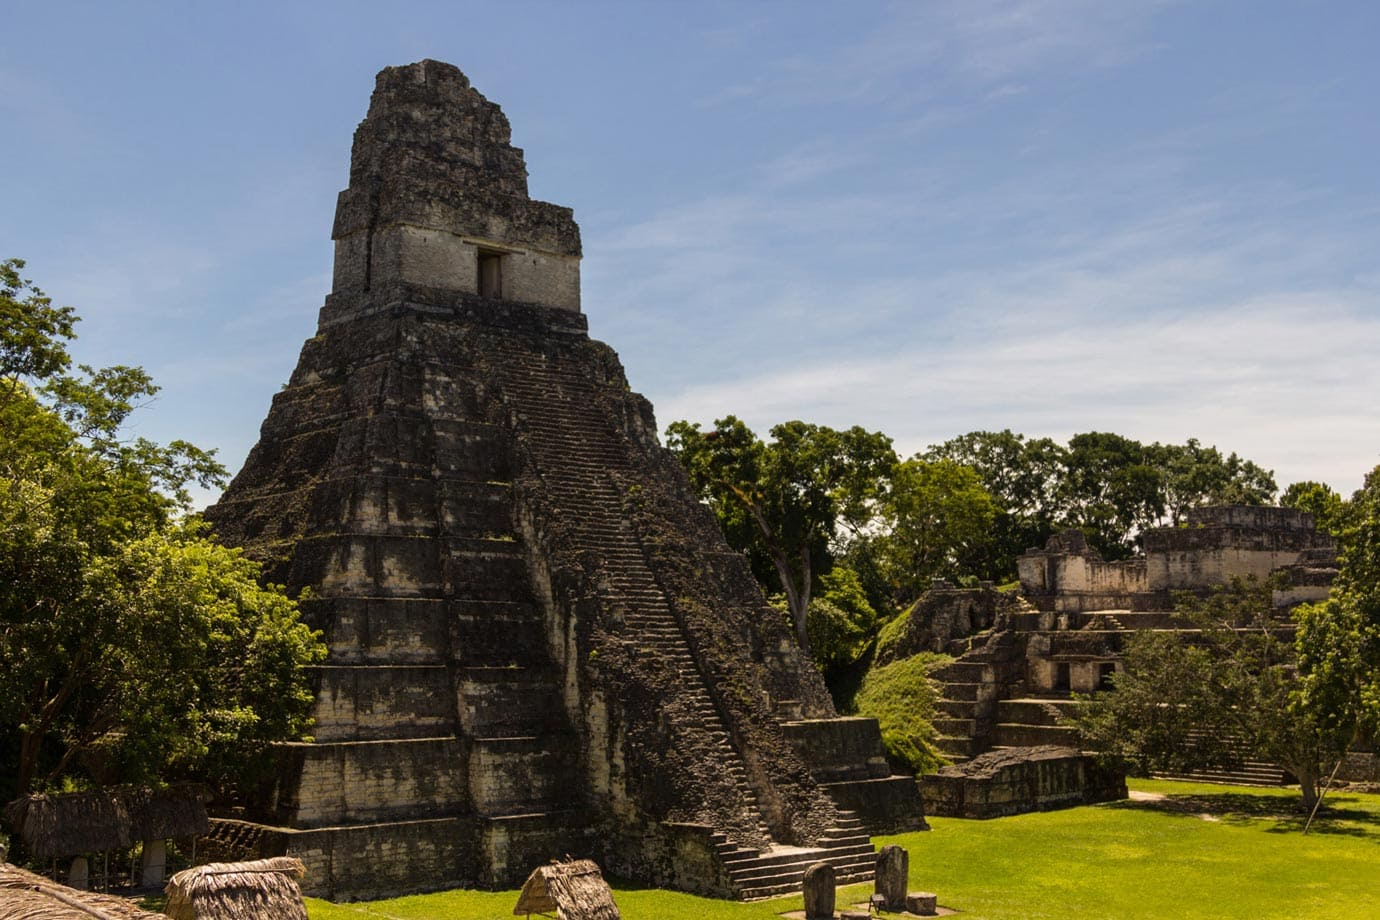 From the smallest cluster of stones to the tallest pyramid the whole site is incredibly impressive, and taking in Tikal is a must on any trip to Guatemala and Central America